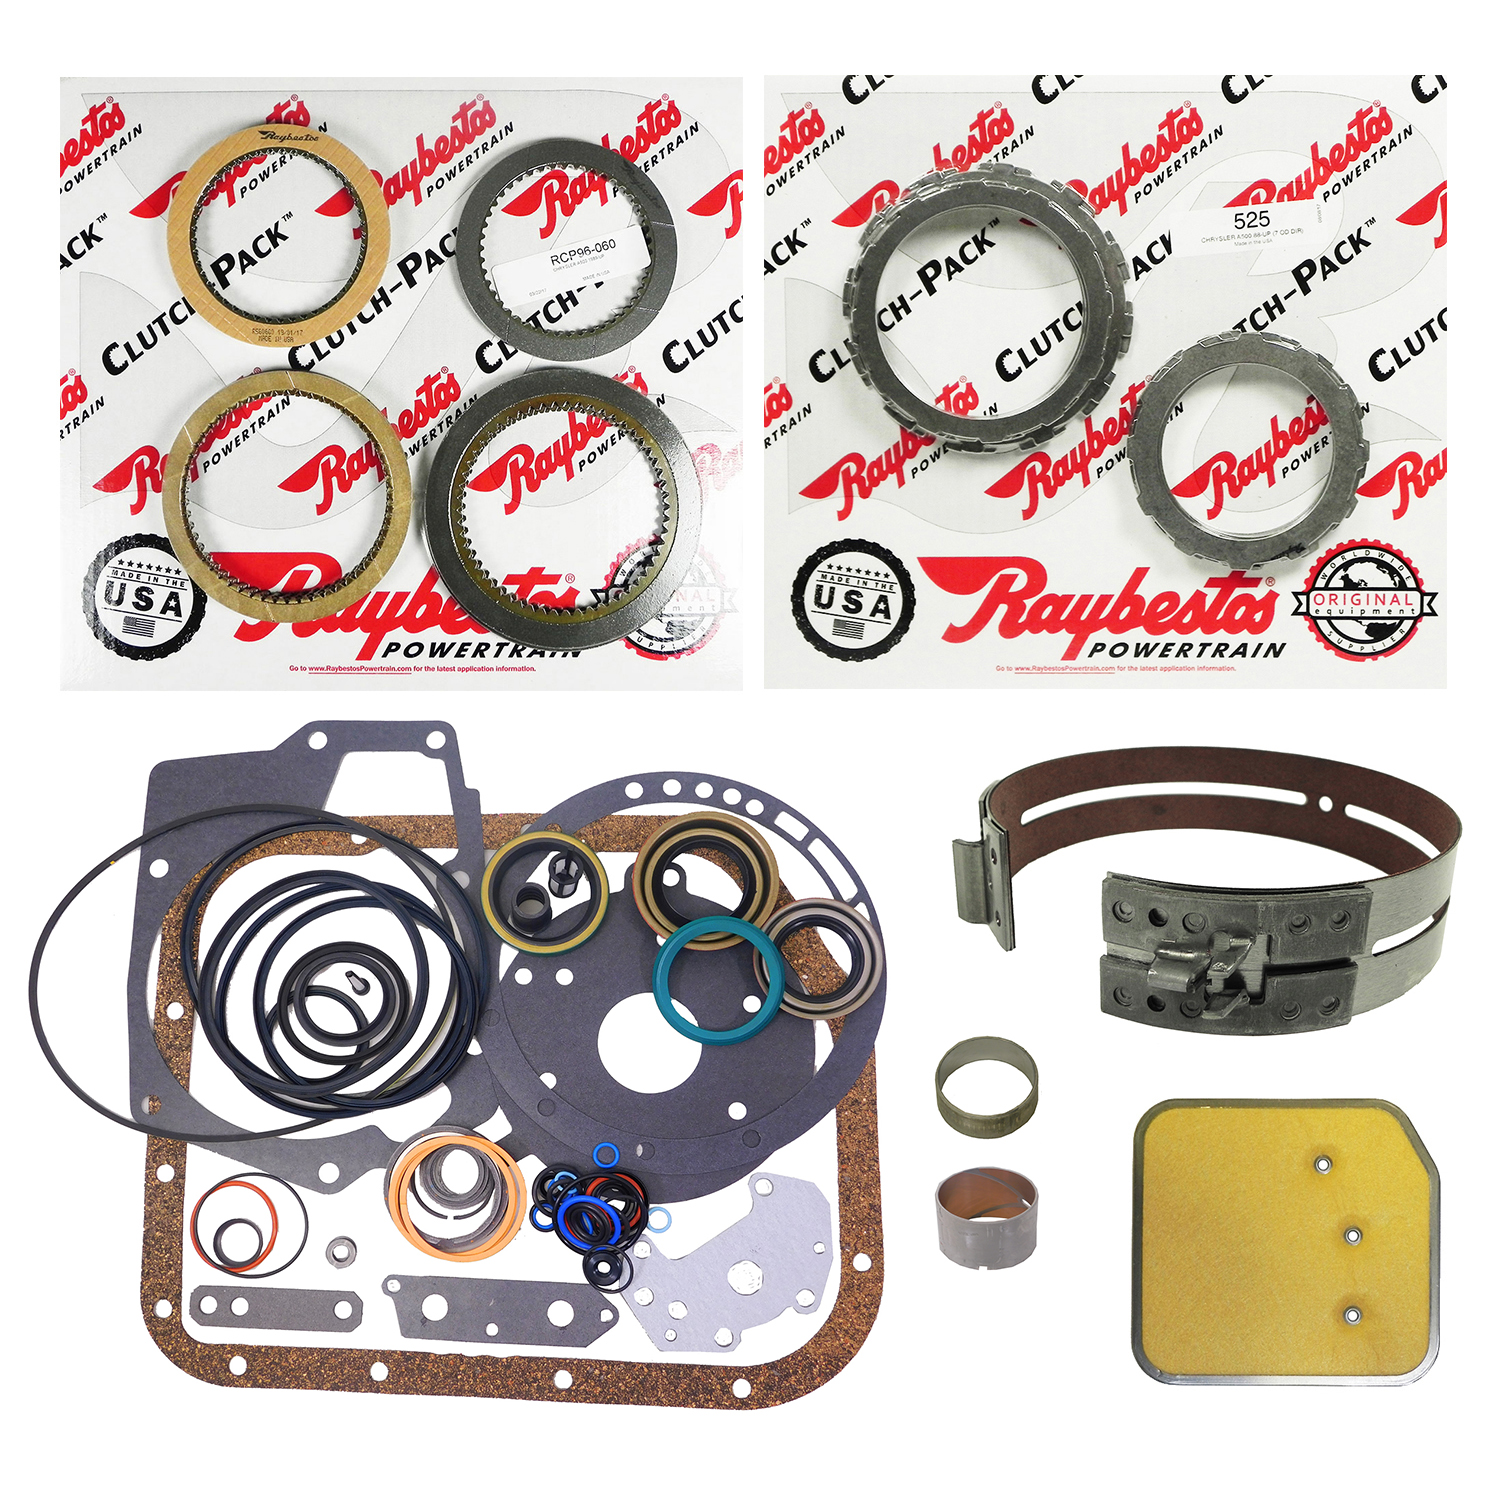 A500 Super Rebuild Kit